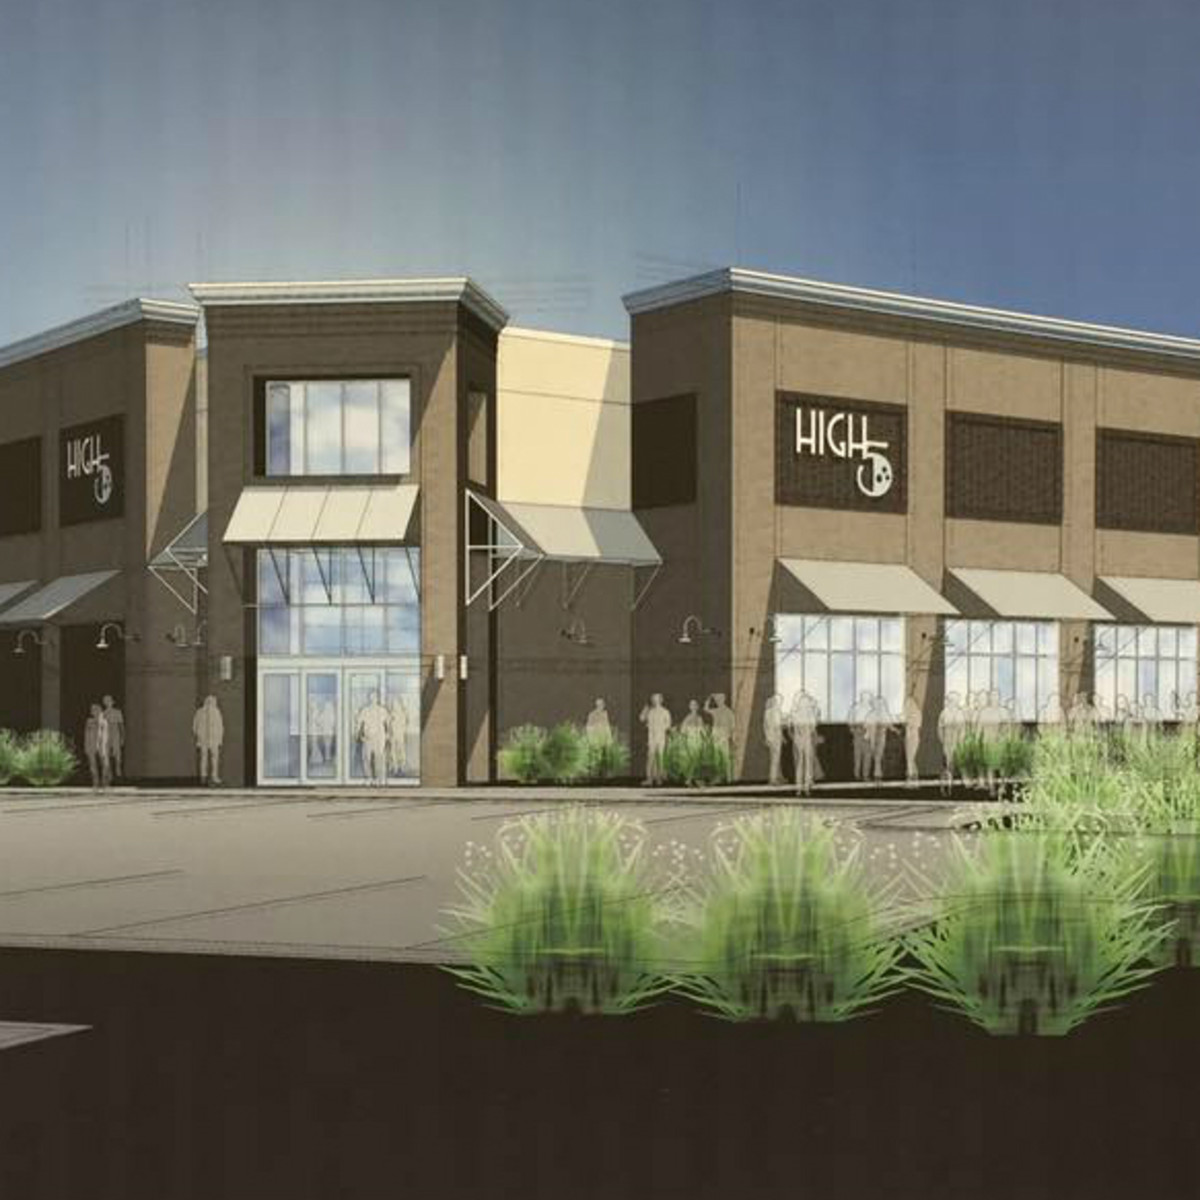 High 5 five entertainment venue Lakeway Austin rendering 2015